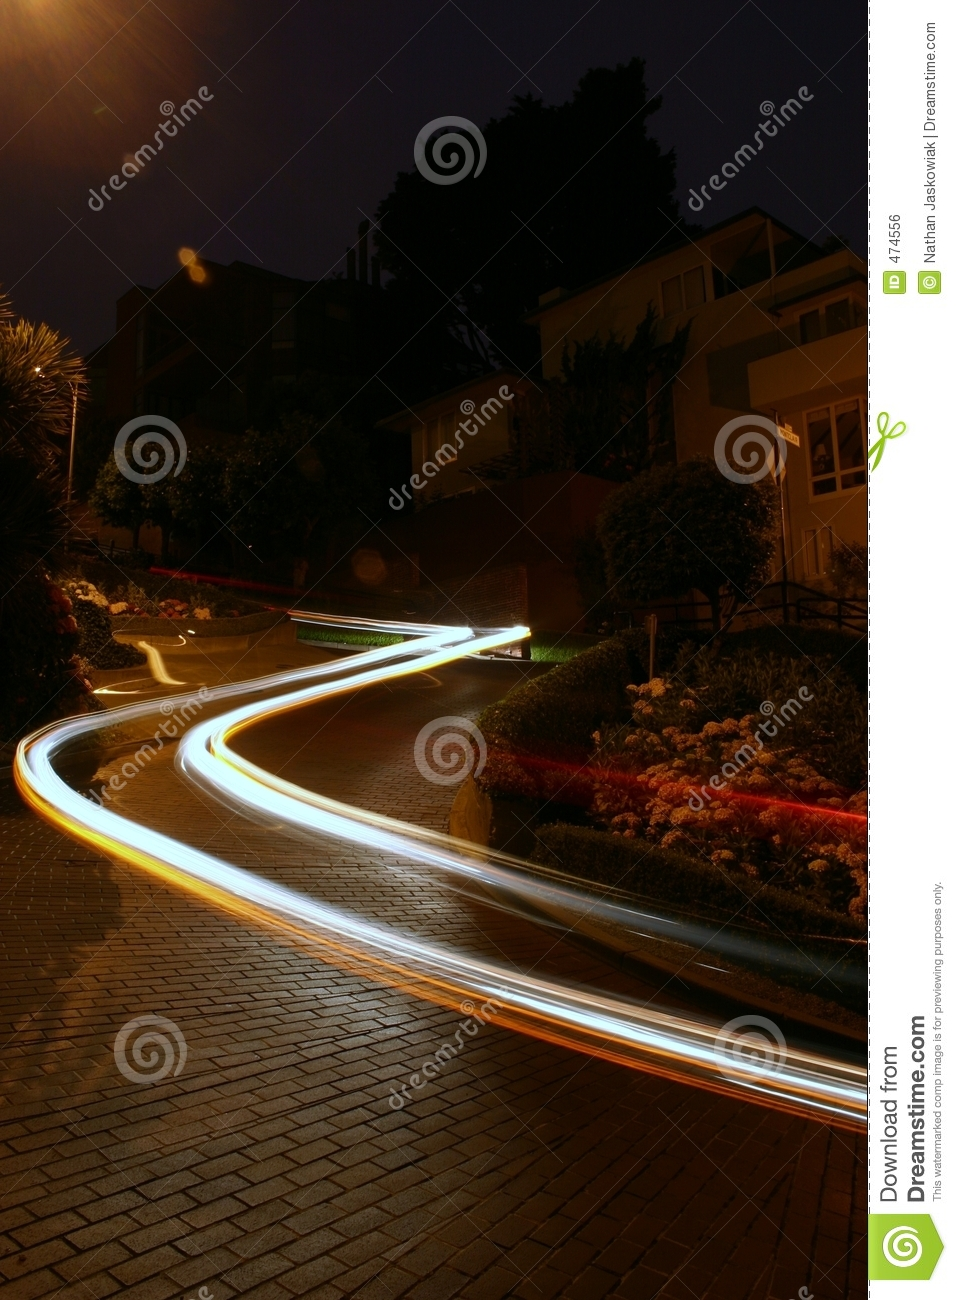 Download Car on Lombard Street stock photo. Image of darkness, district - 474556